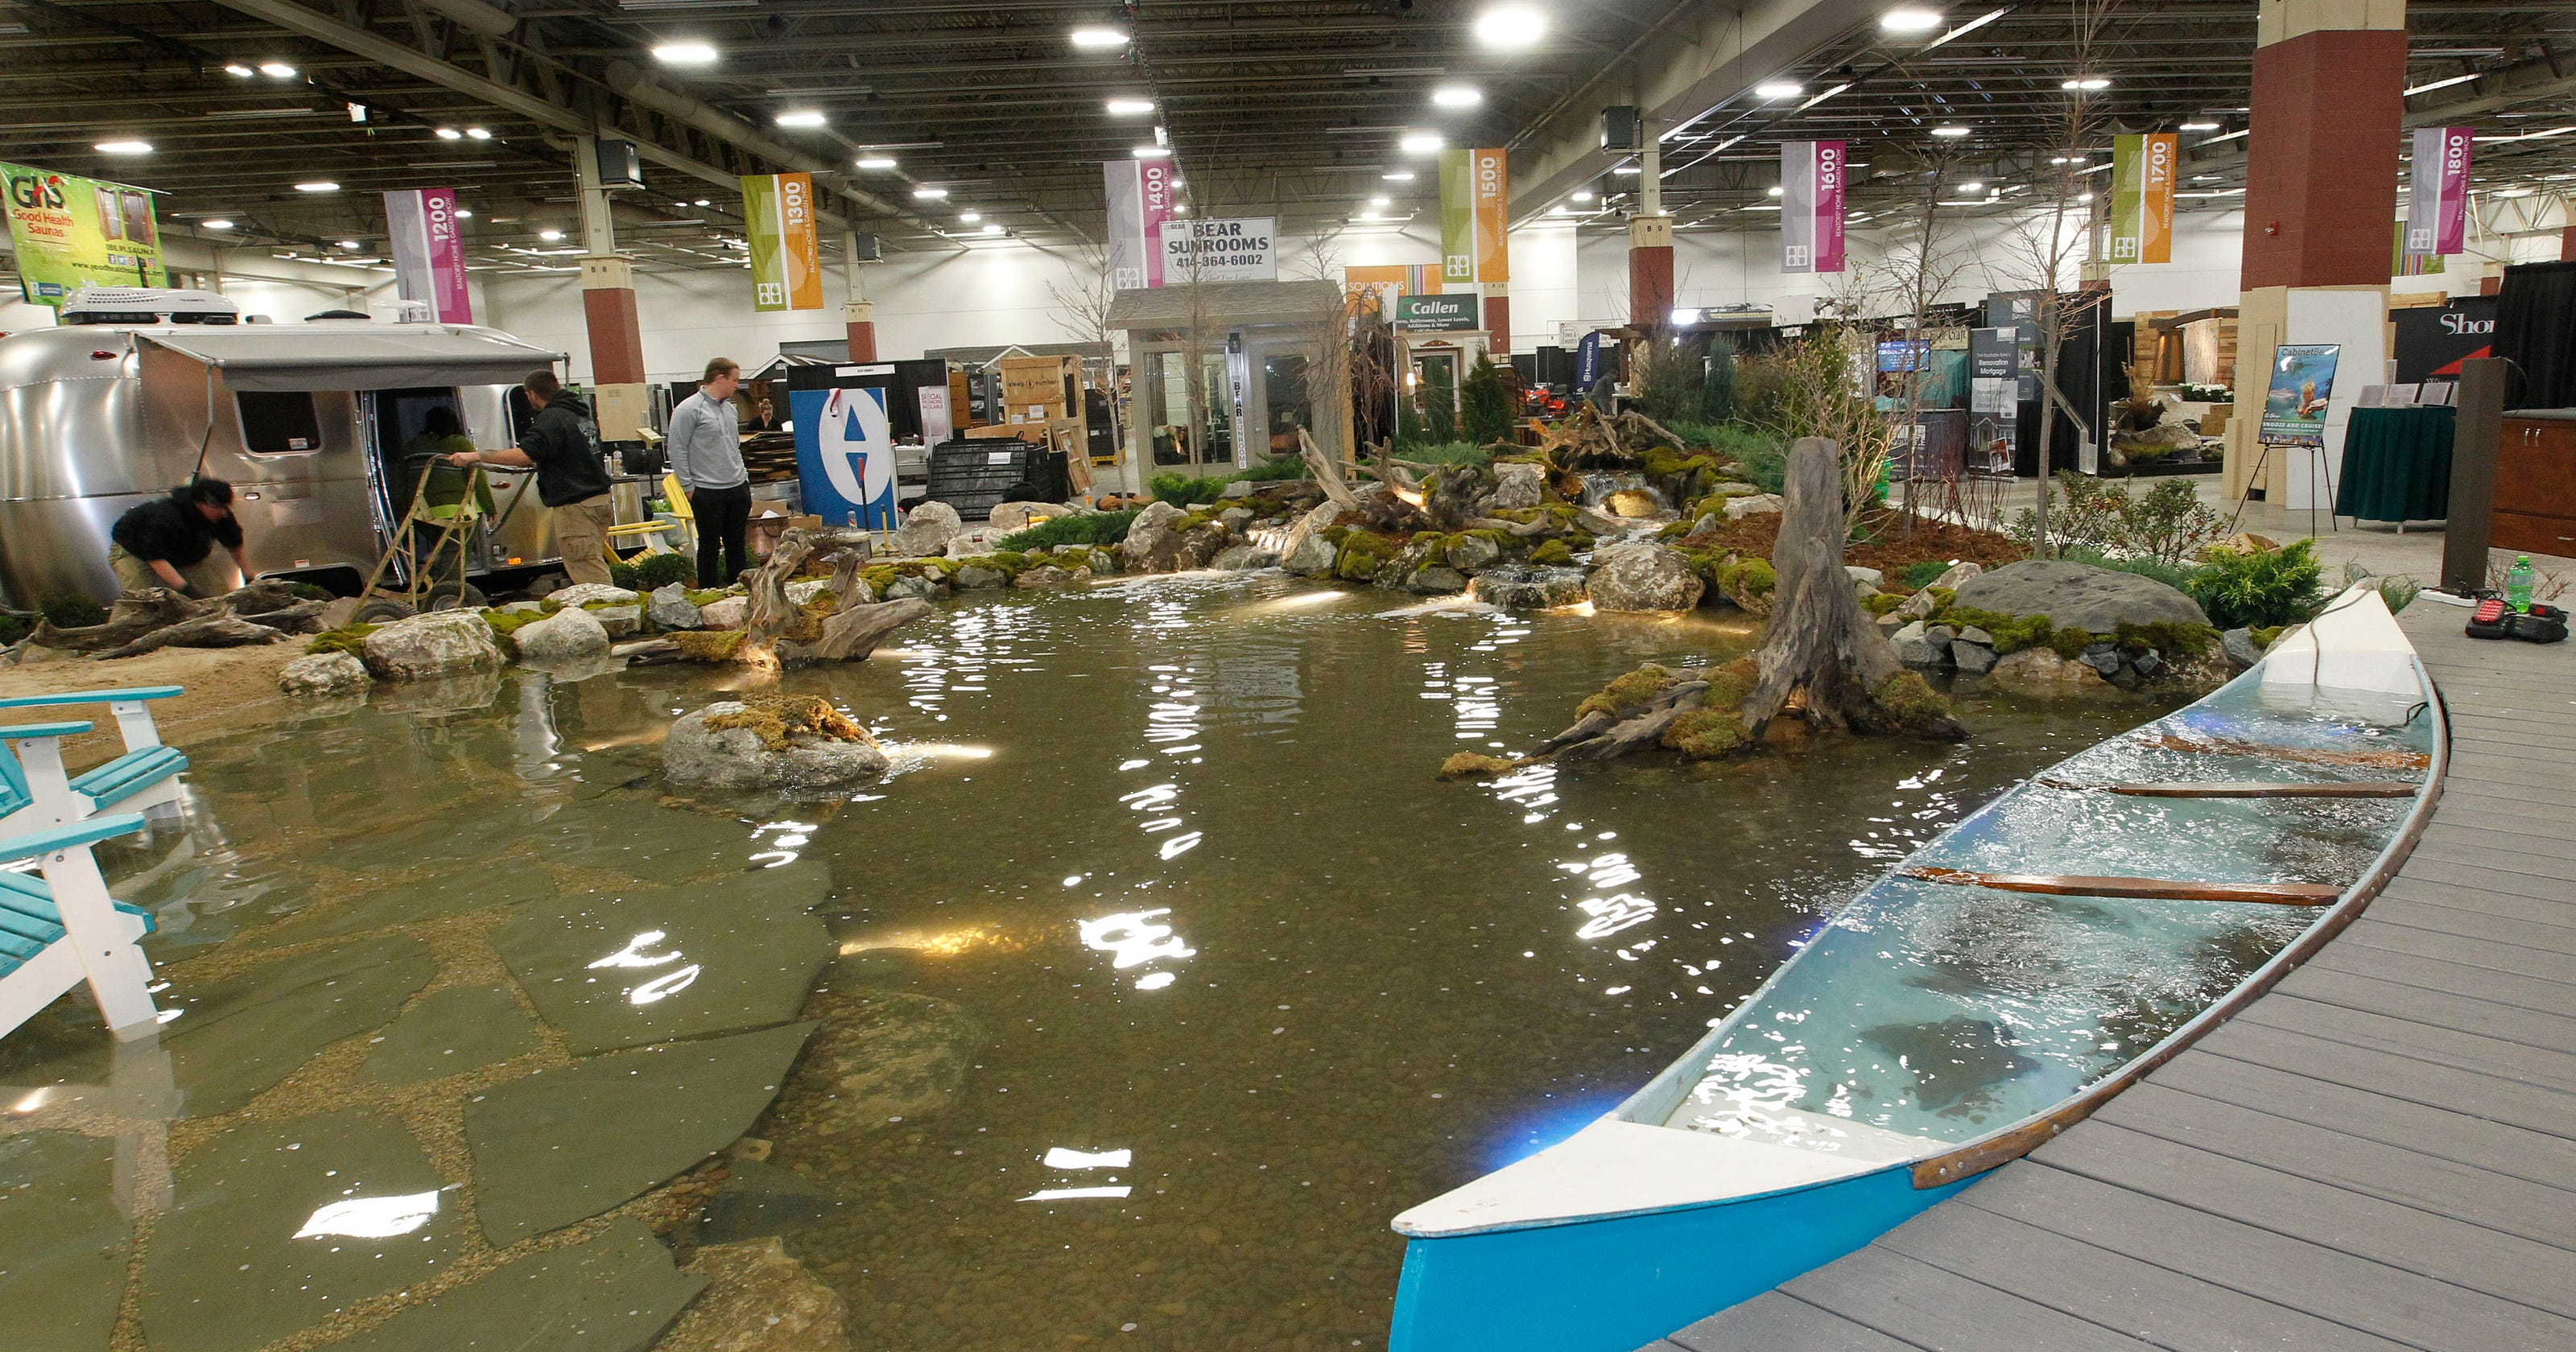 Realtors Home & Garden Show offers home and yard improvement ideas